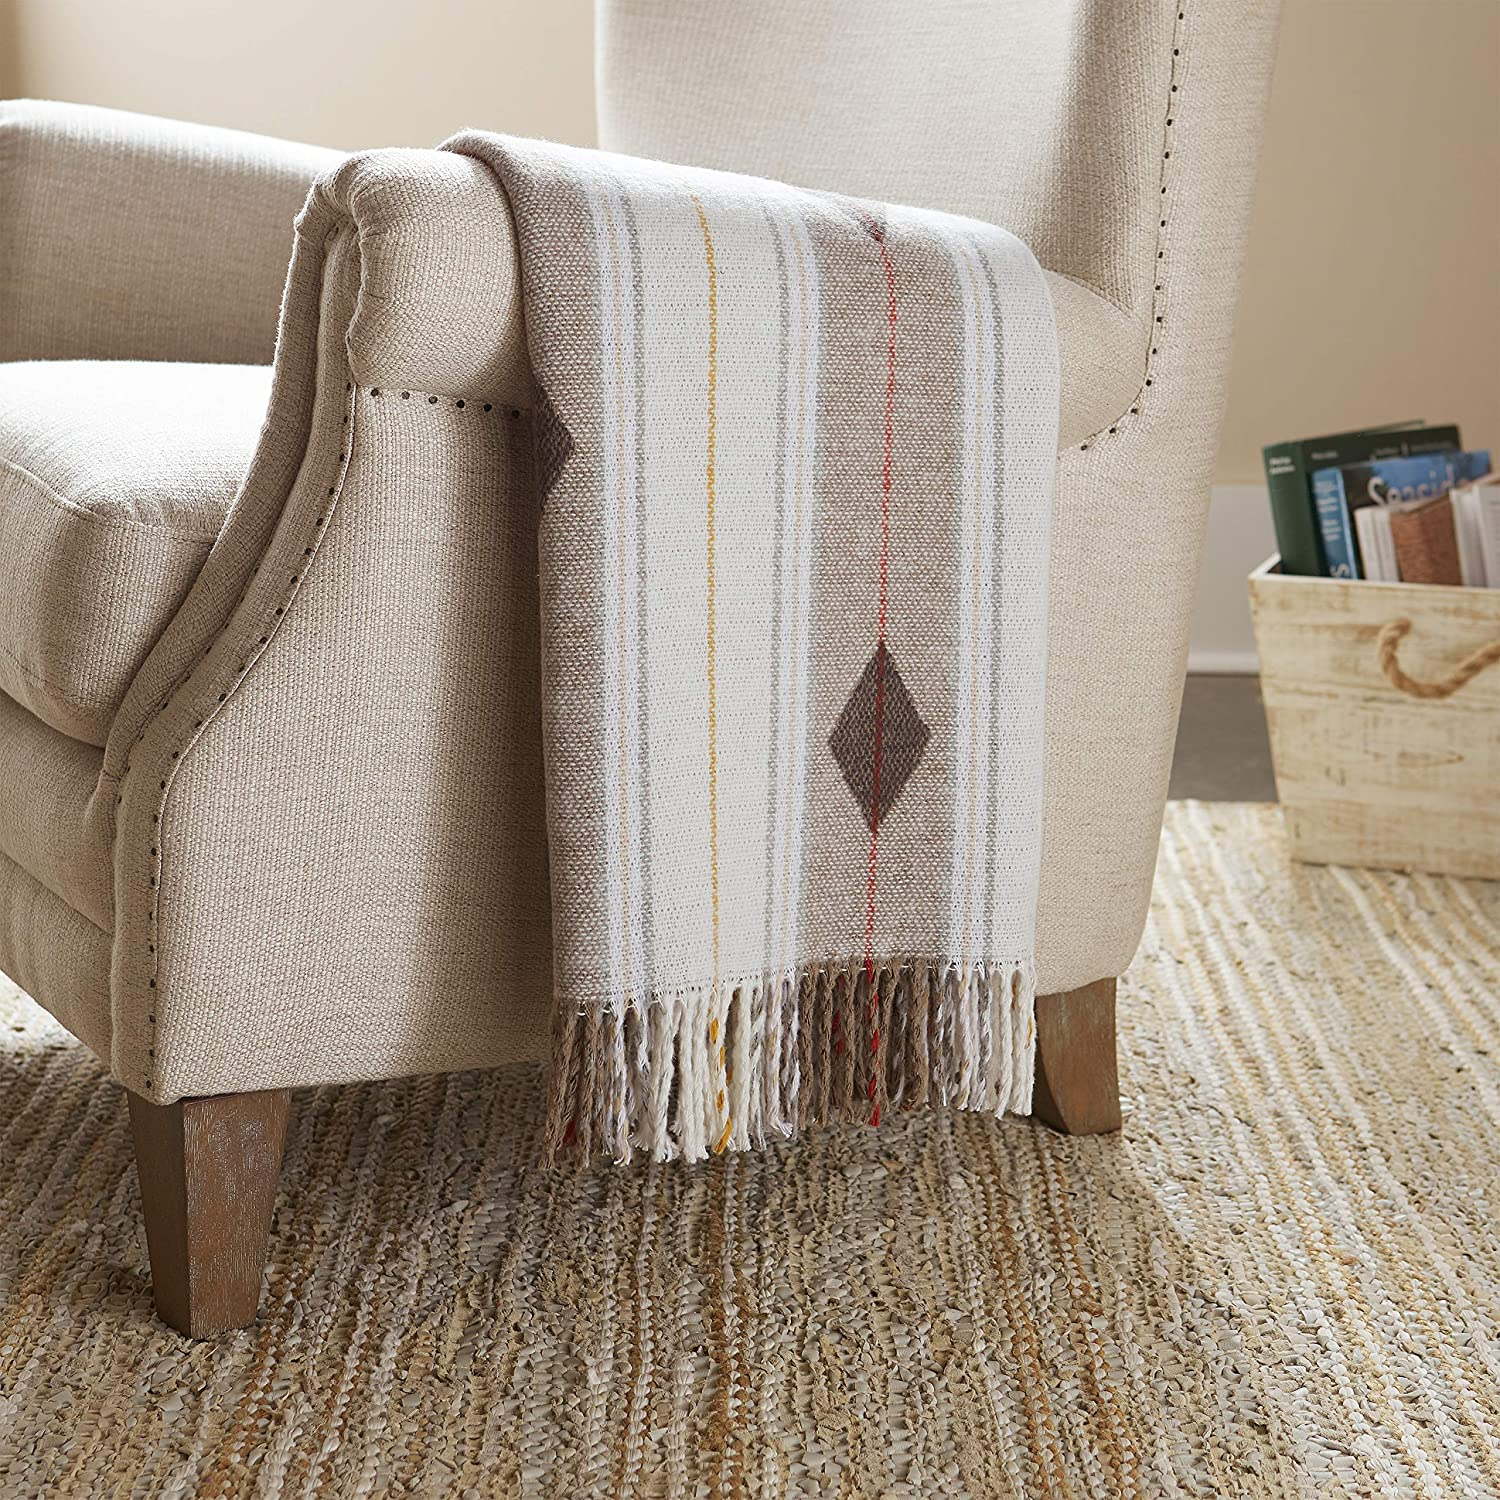 """Stone & Beam Contemporary Stripes and Lines Throw Blanket, 60"""" x 50"""", White/Multicolored"""